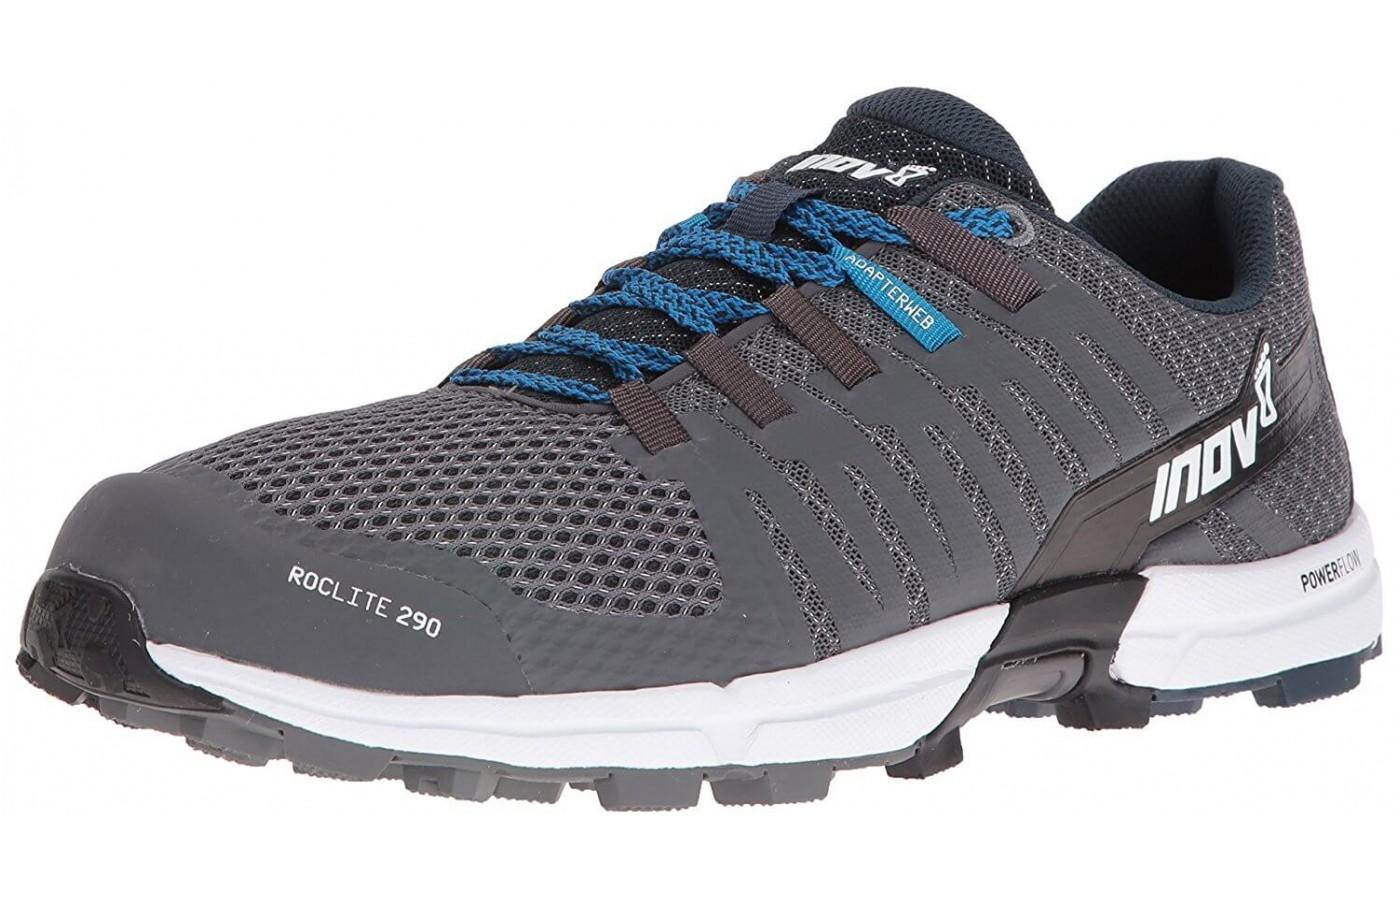 An angled perspective of the Inov-8 Roclite 290.